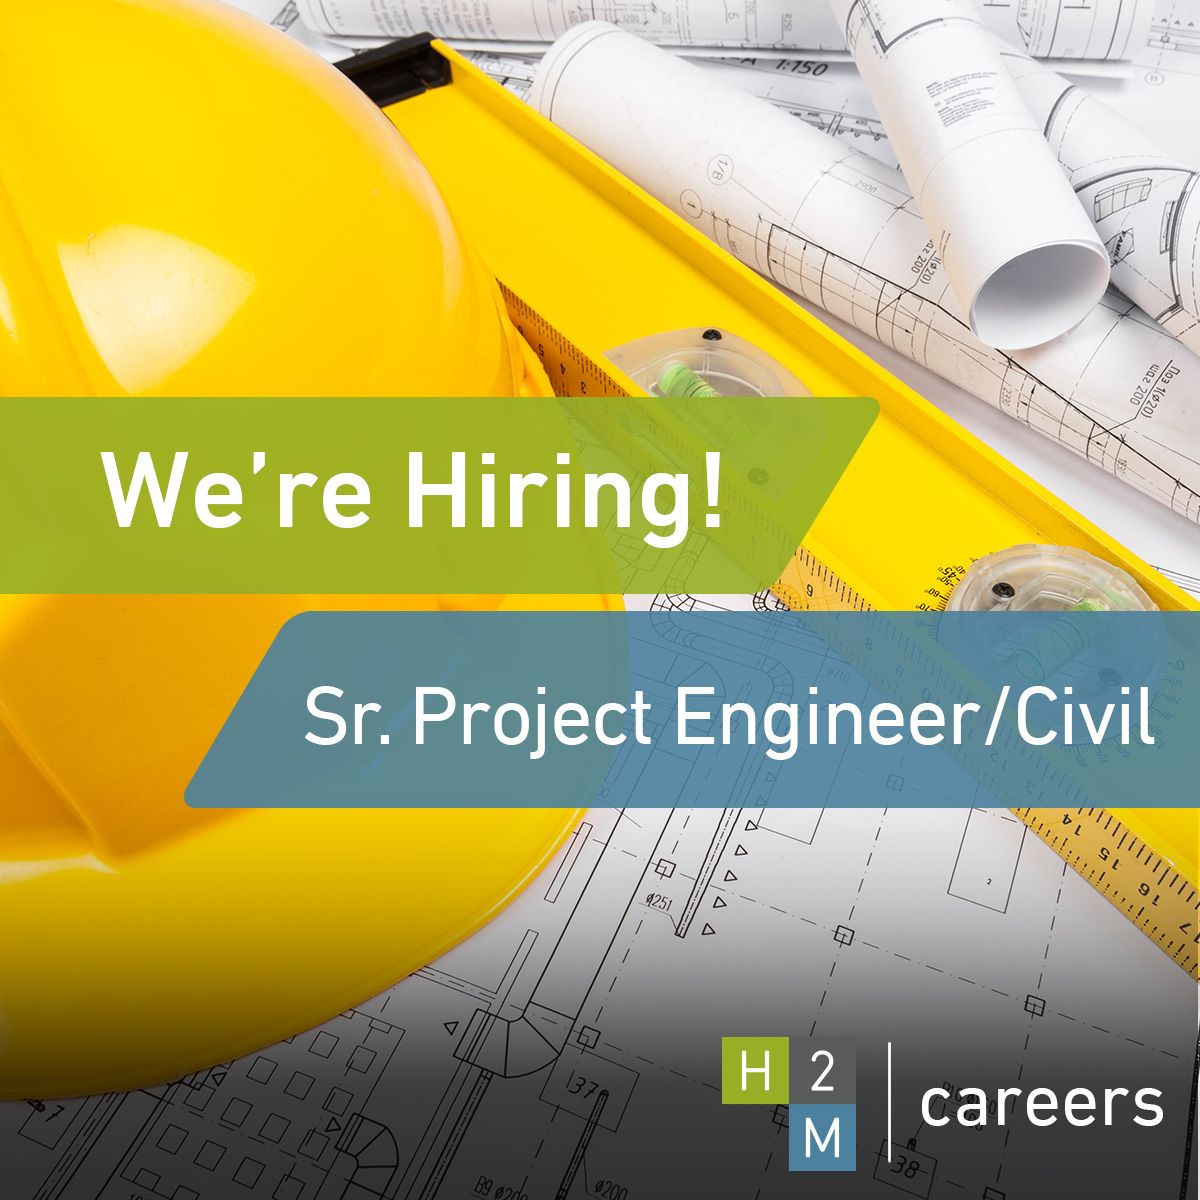 We're seeking a Sr. Project Engineer in Melville, NY, with